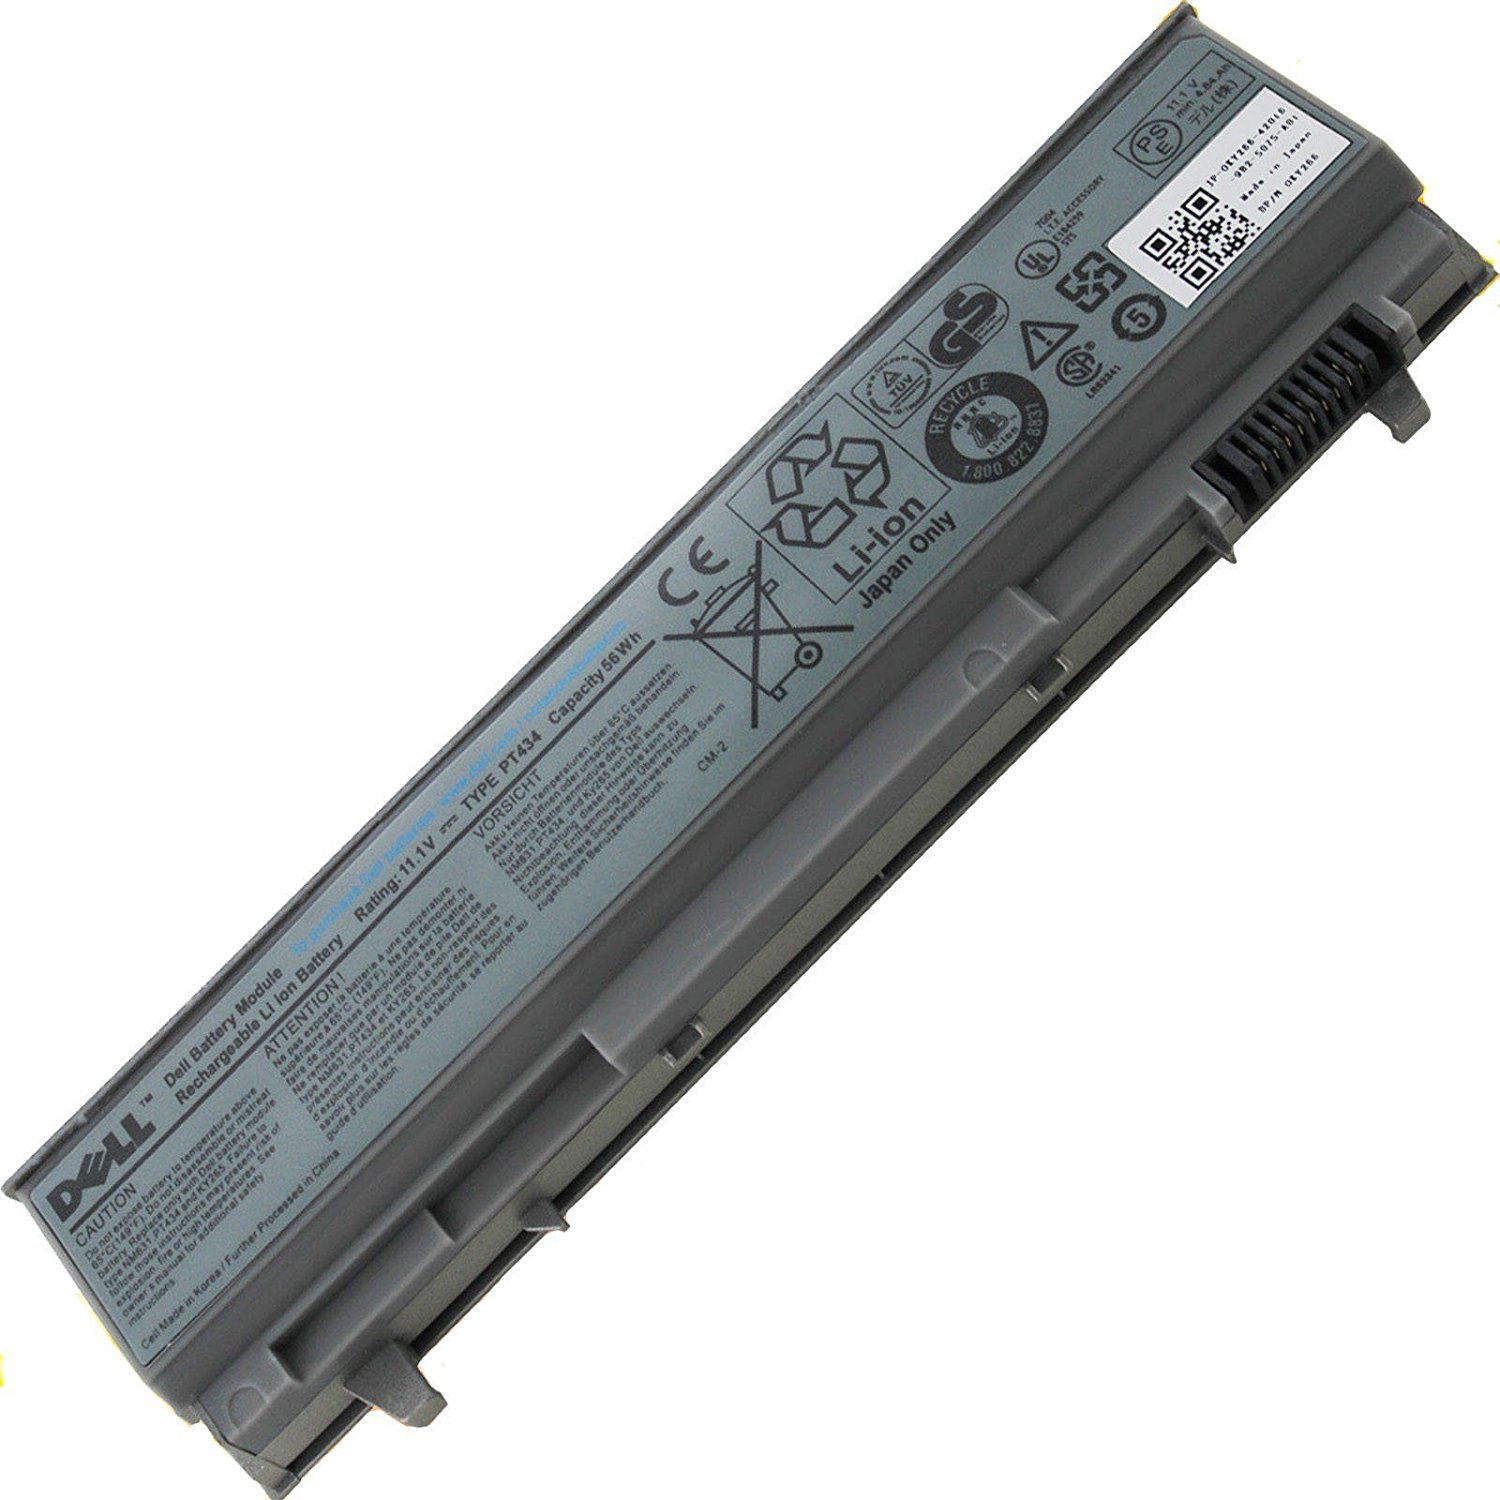 GENUINE ORIGINAL Battery DELL LATITUDE E6400 E6410 E6500 W1193 KY265 PT434 PT437